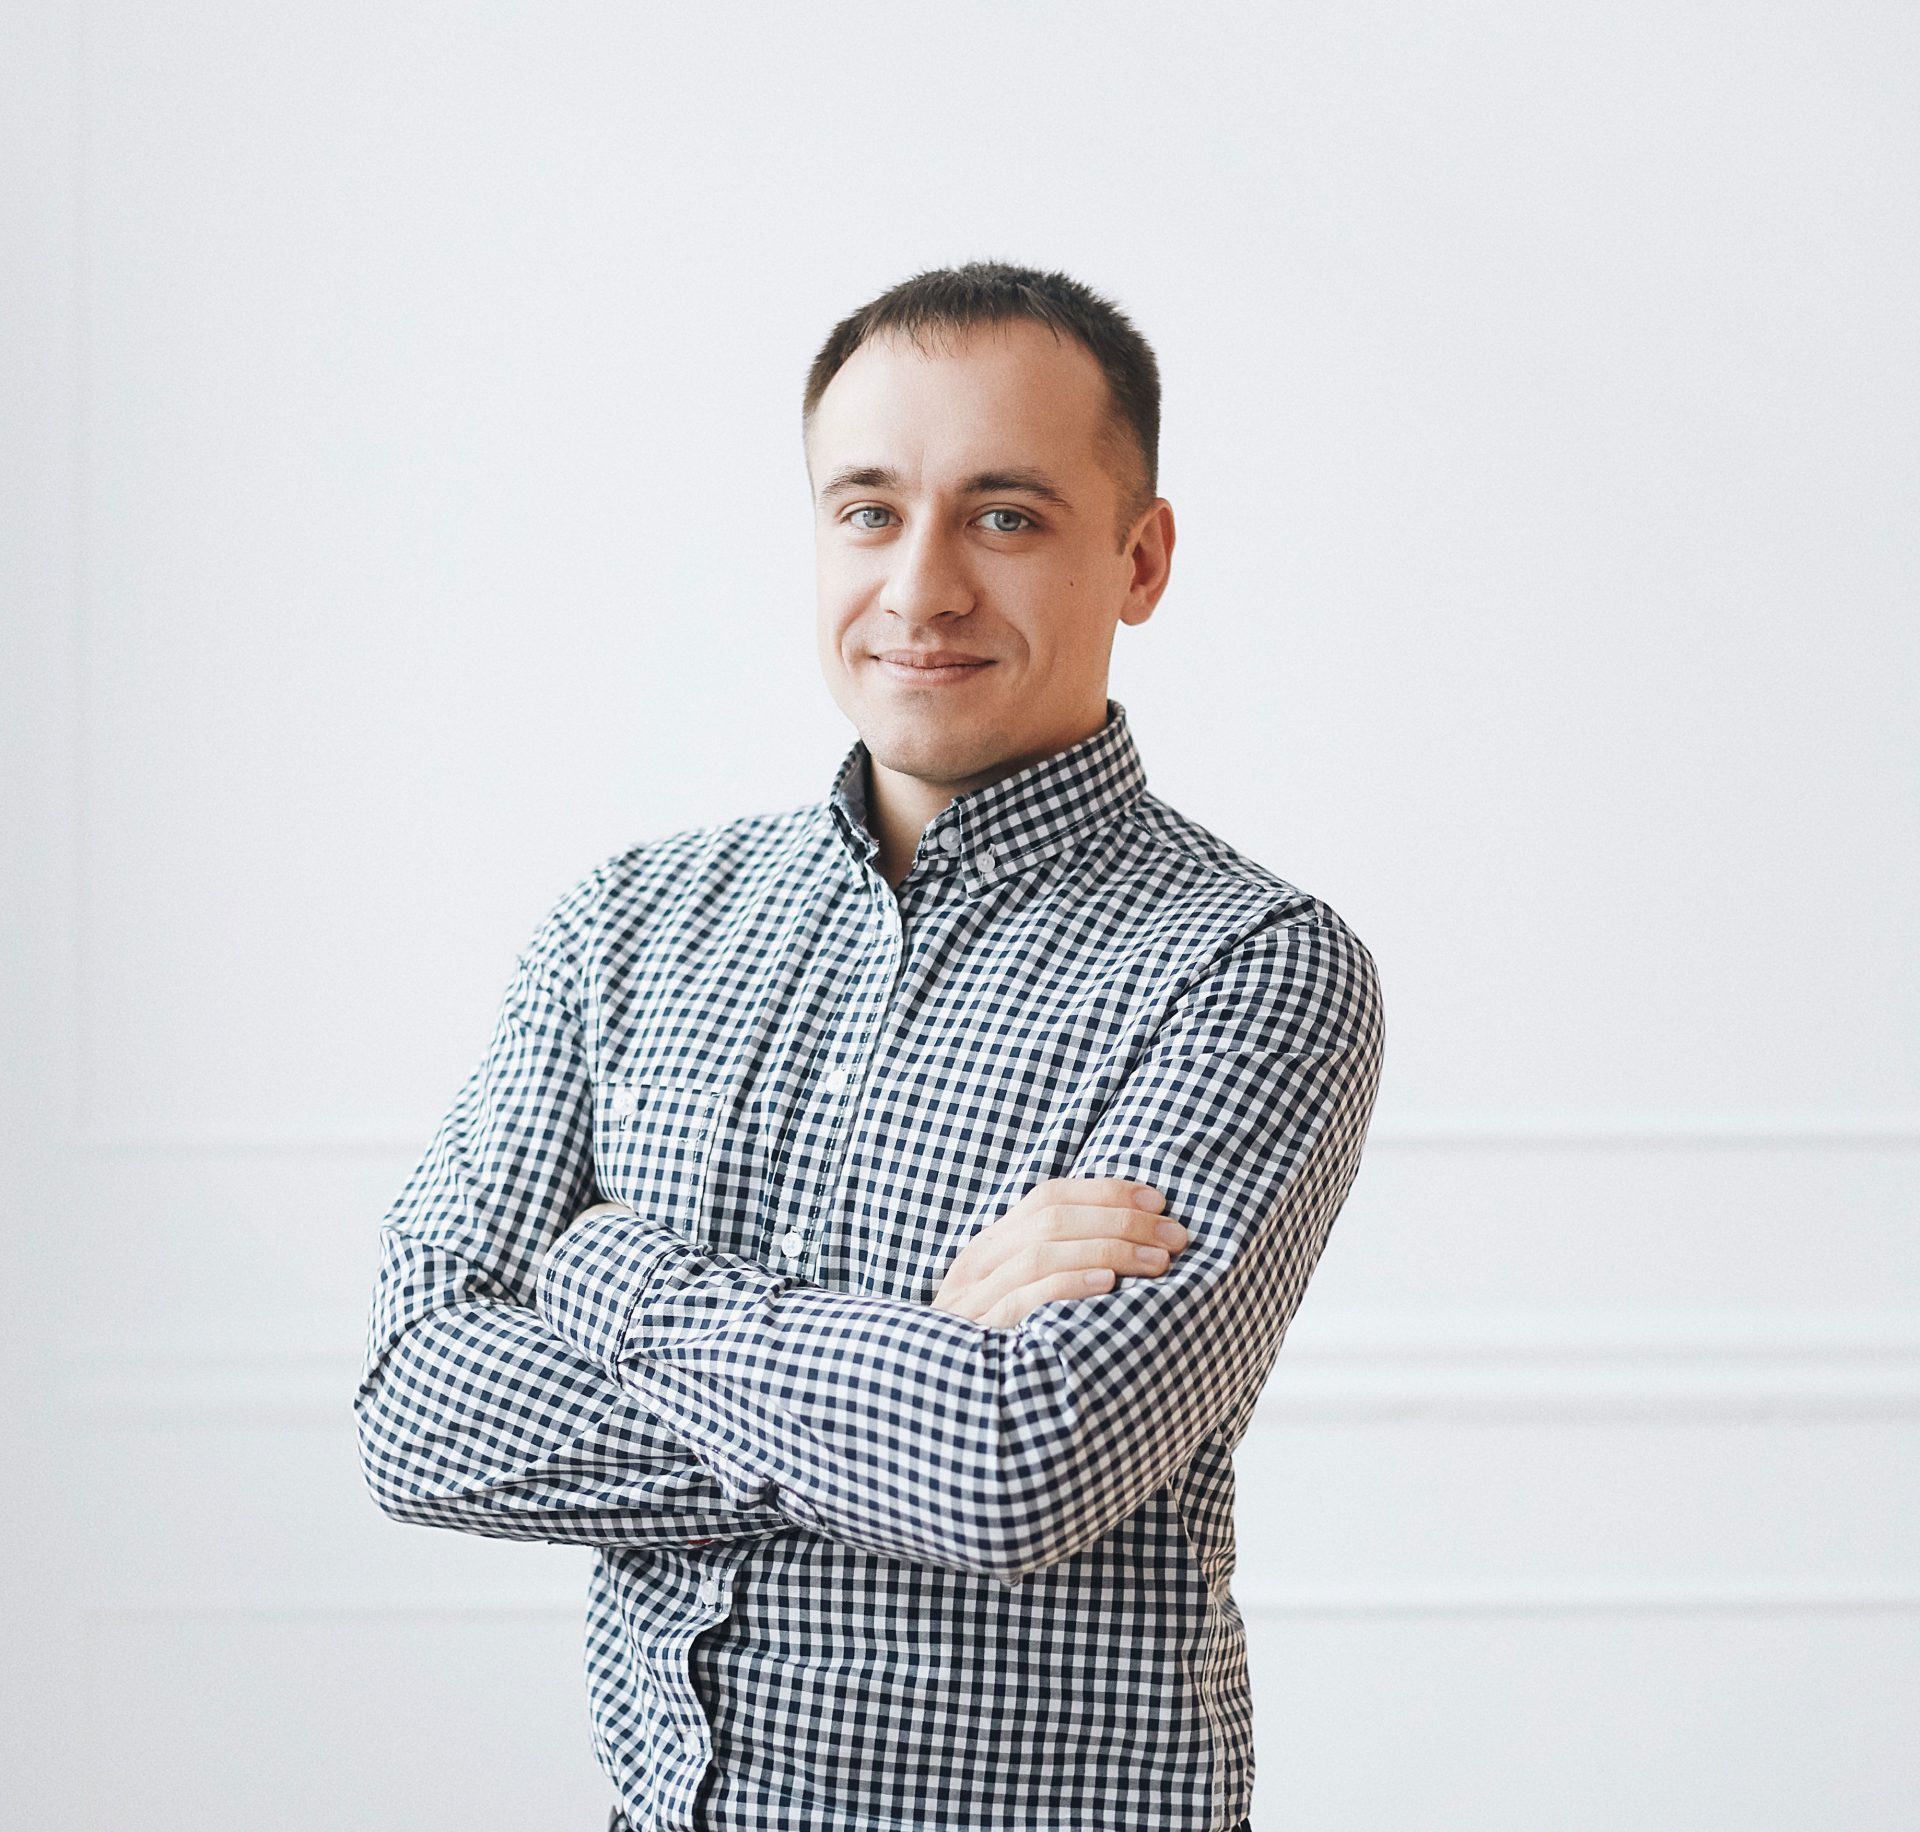 Oleksiy Kuryliak - Marketing Consultant and Strategist